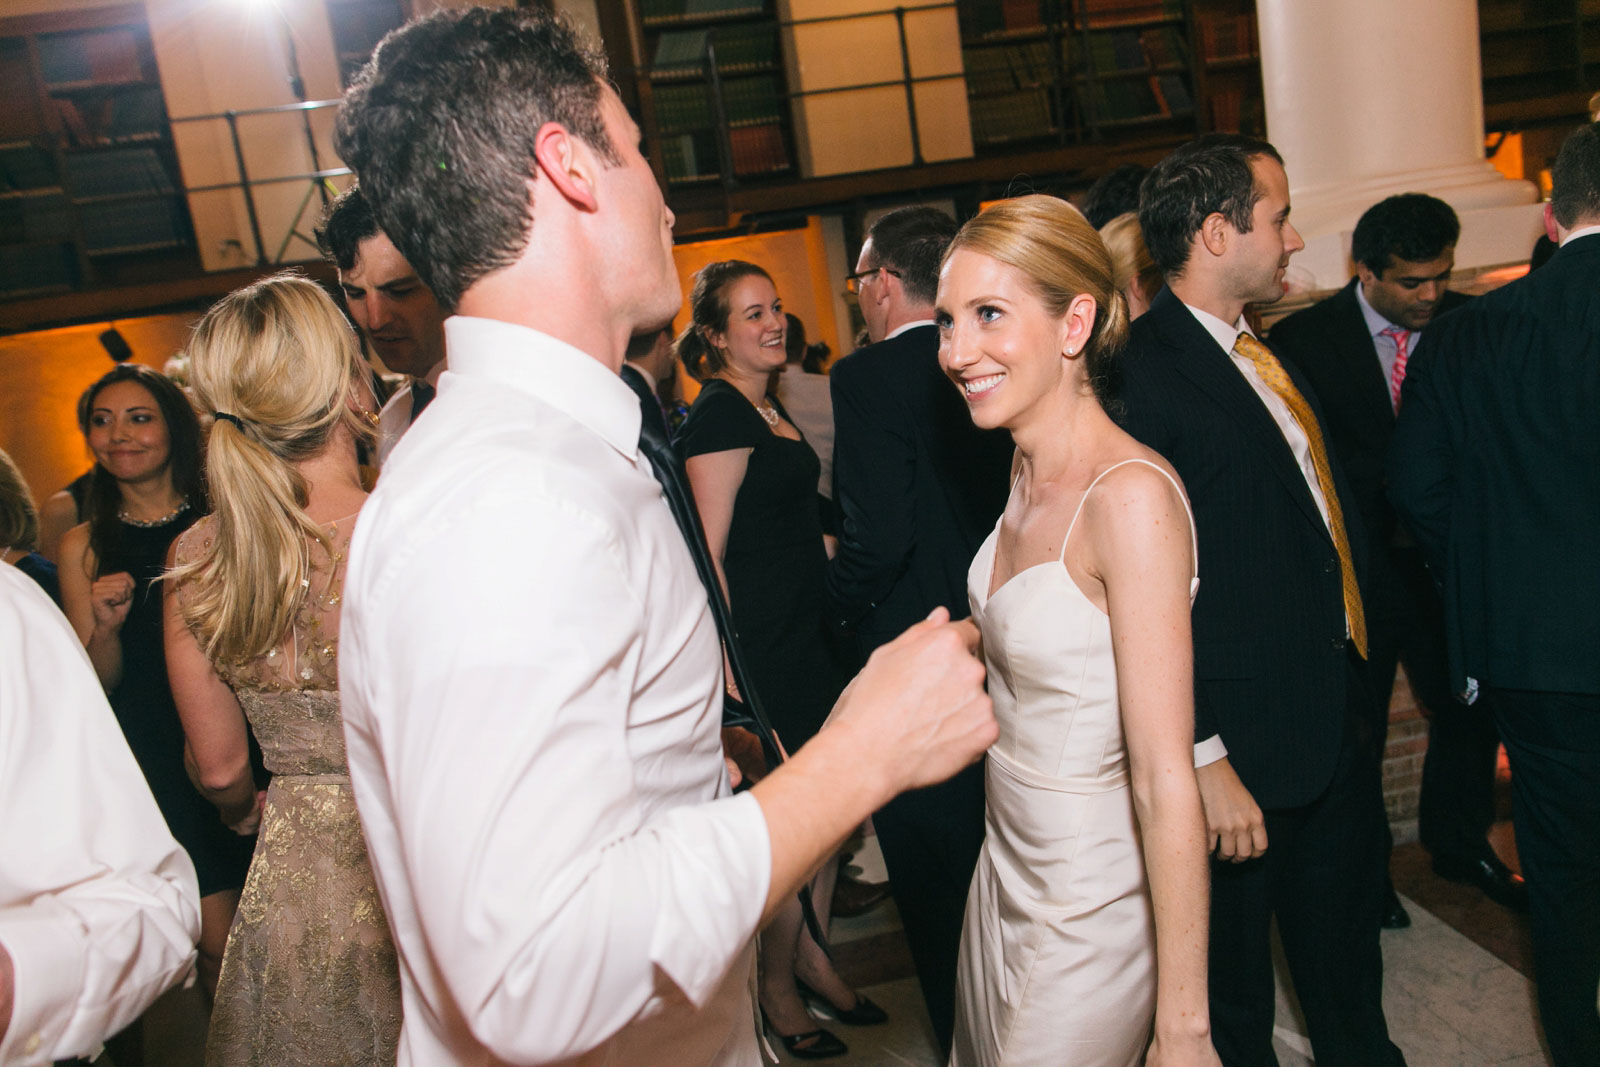 bride smiling and dancing with groom at elegant wedding reception at Boston Public Library